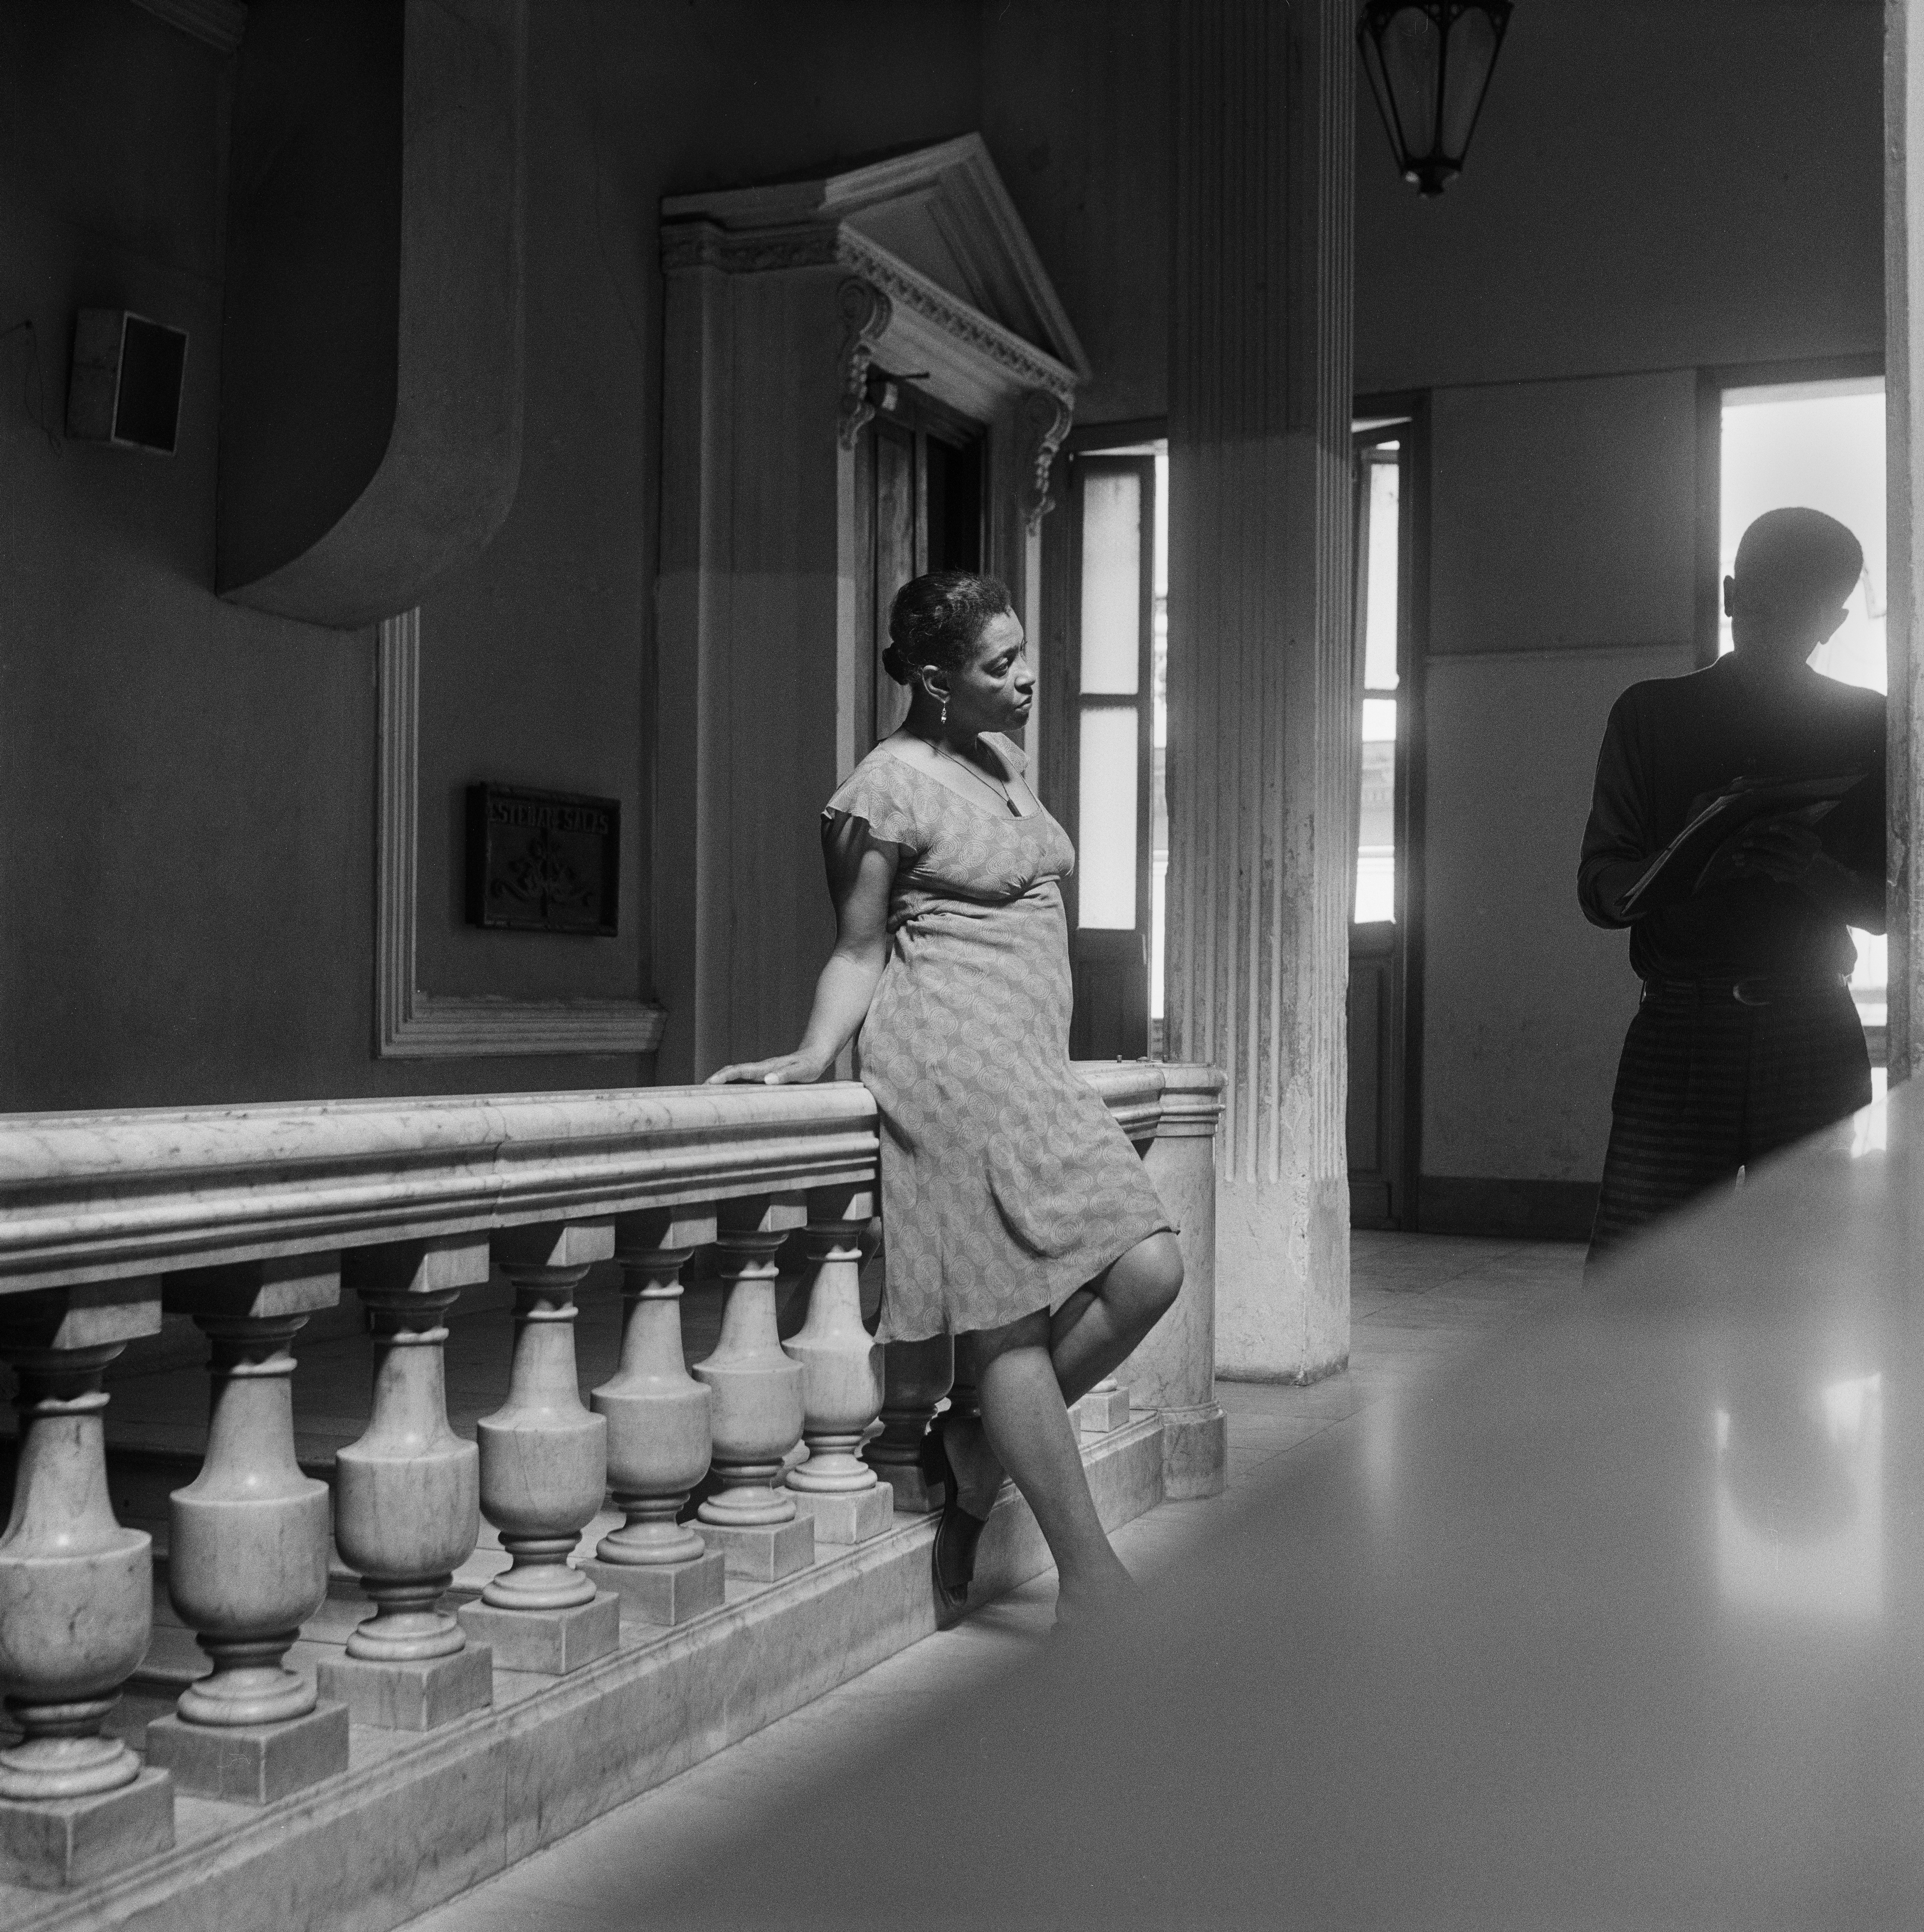 Galerie Barbara Thumm \ Carrie Mae Weems: In the Halls of Justic (CMW-02-004) \ In the Halls of Justice (2002)